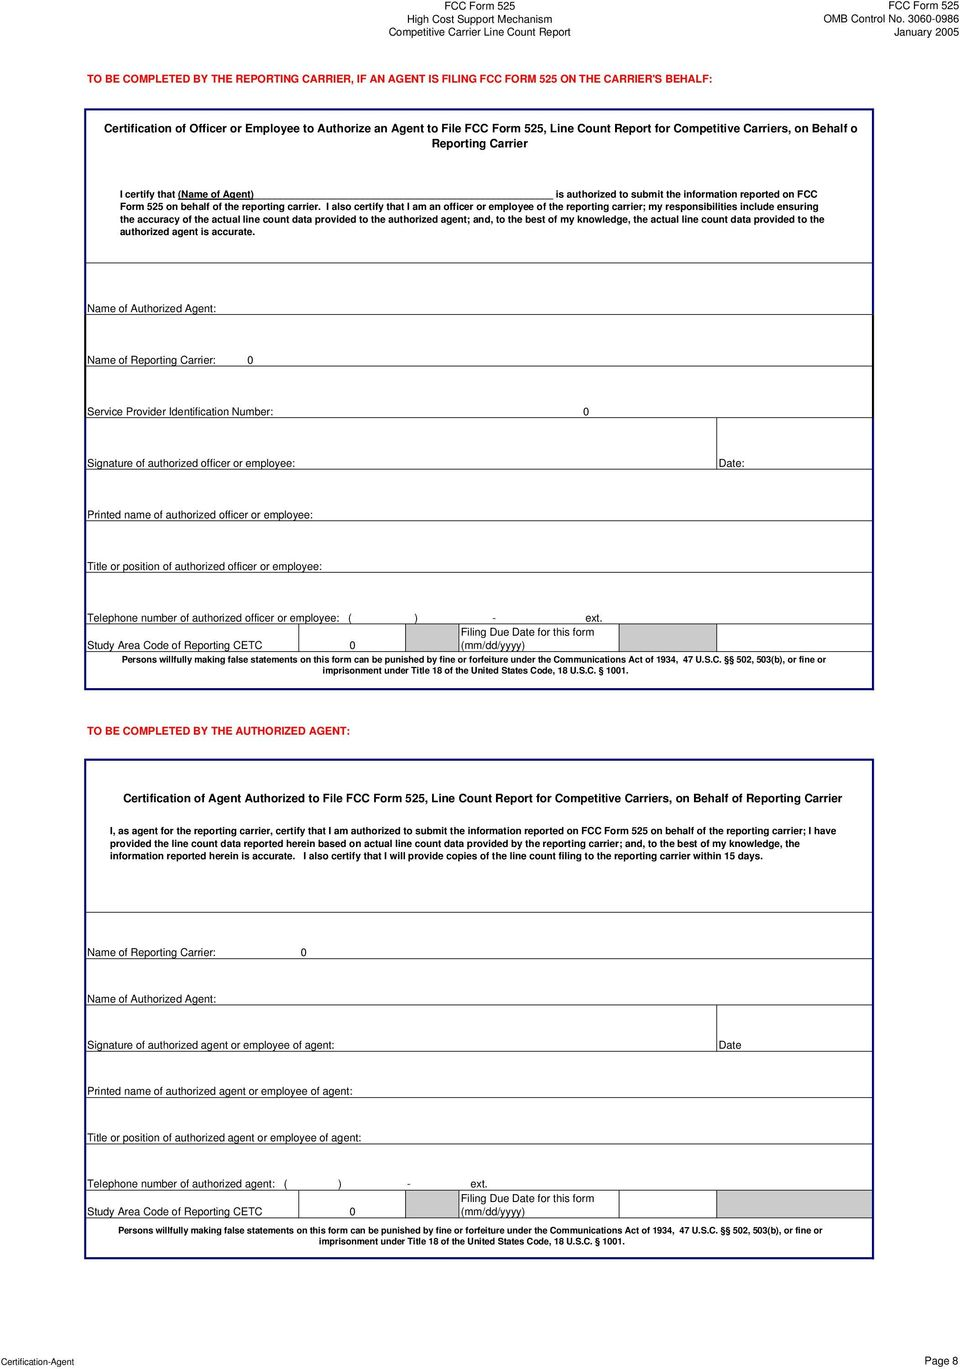 Report for Competitive Carriers, on Behalf o Reporting Carrier I certify that (Name of Agent) is authorized to submit the information reported on FCC Form 525 on behalf of the reporting carrier.